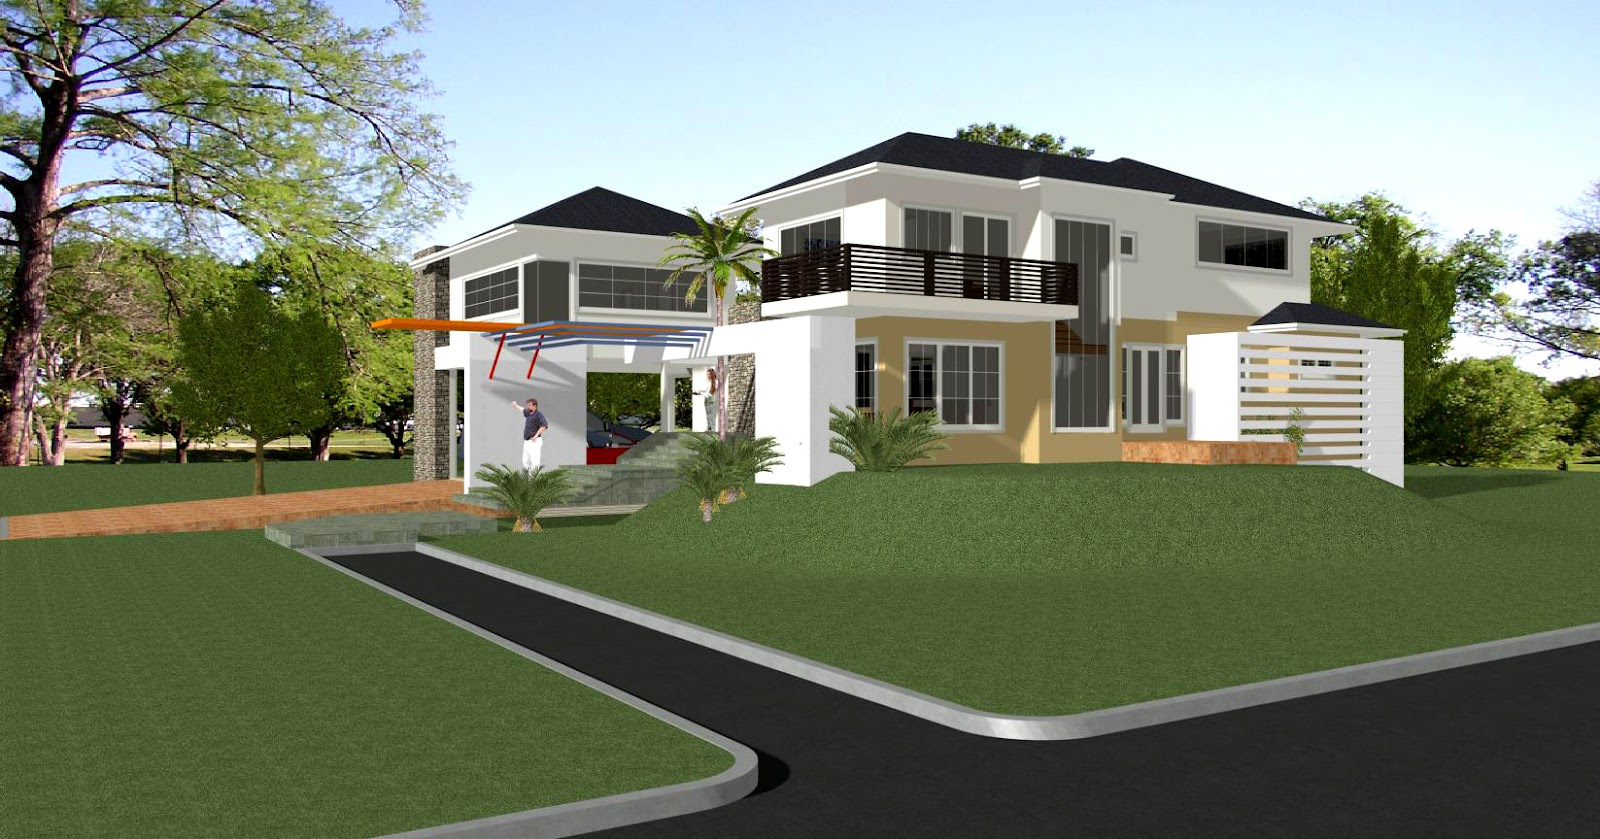 house design iloilo house design in philippines iloilo house designs